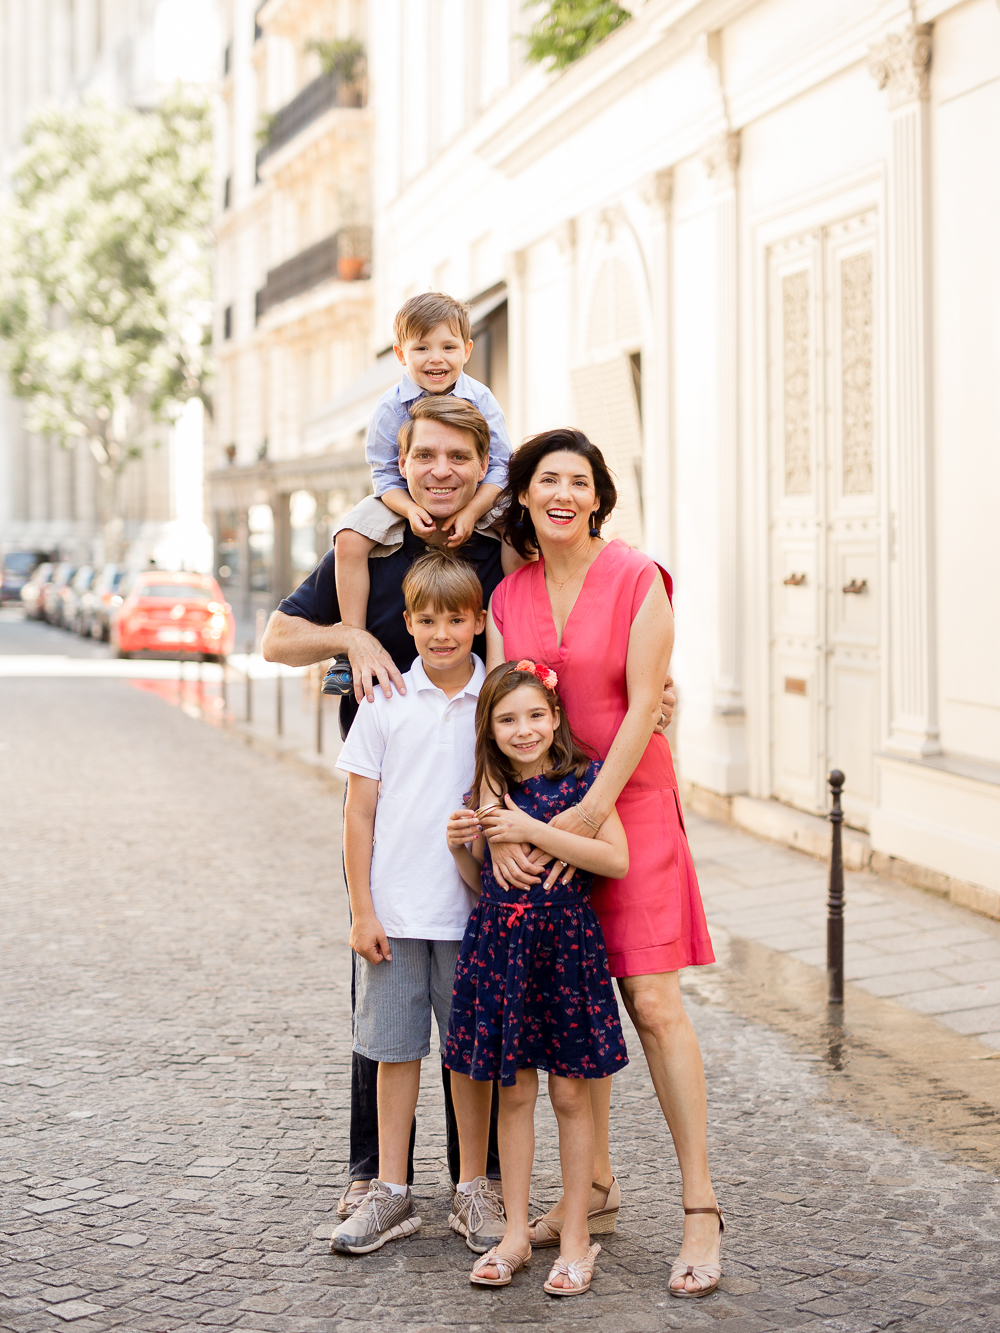 paris-family-portrait-photographer-location-ideas-paris-6_arrondissement_005.jpg